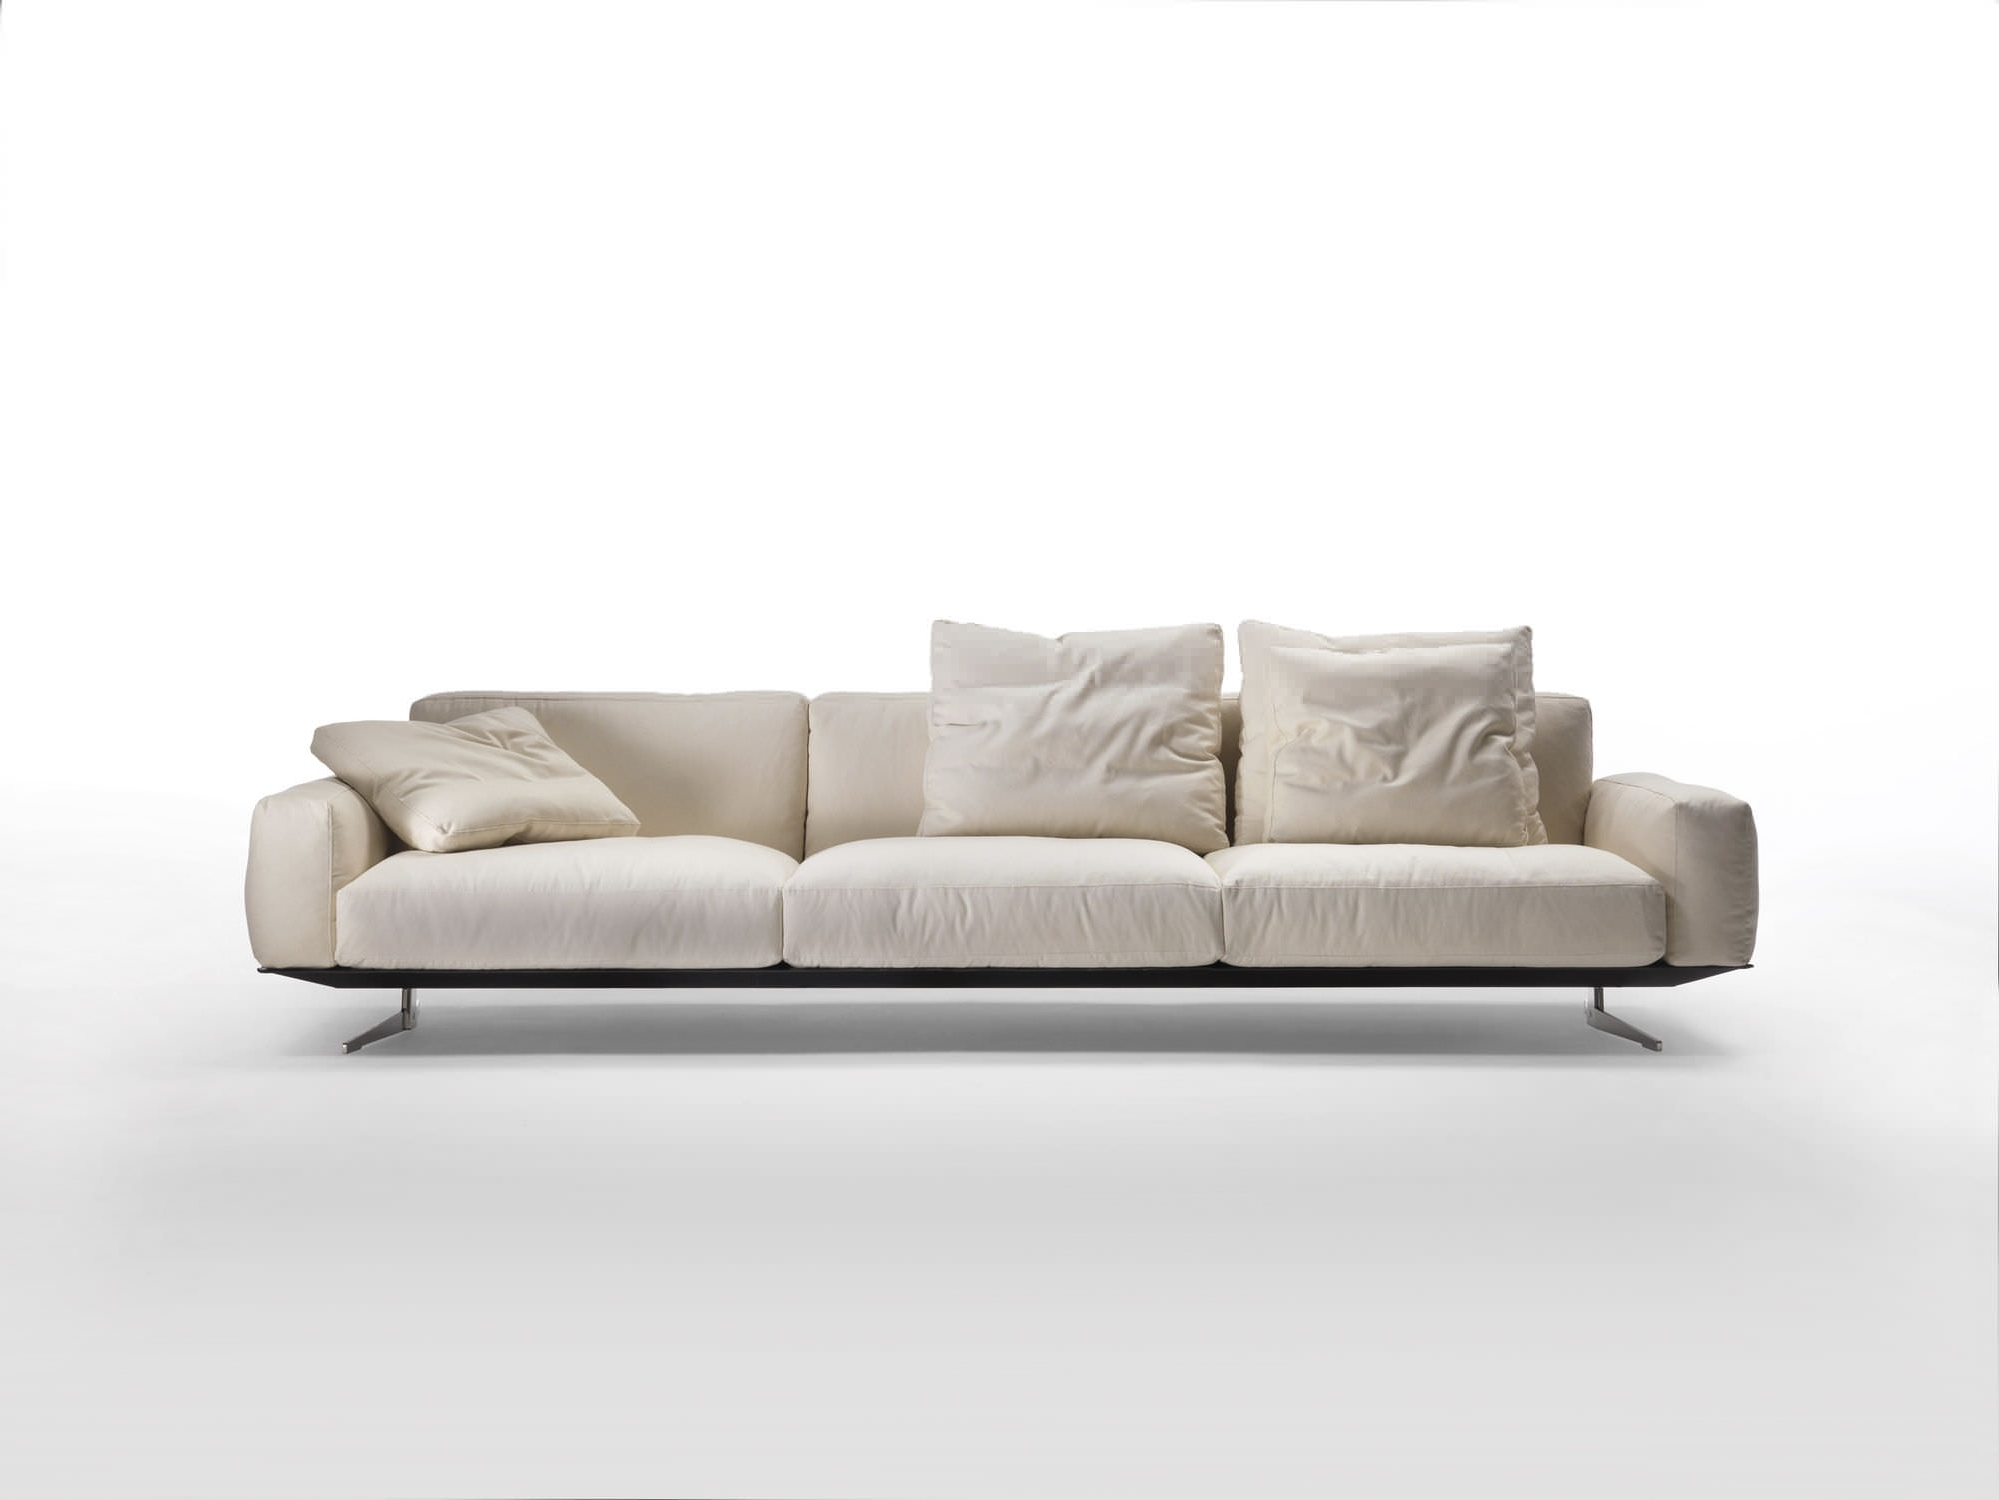 Newest Modular Sofa / Corner / Contemporary / Fabric – Soft Dream (View 12 of 20)